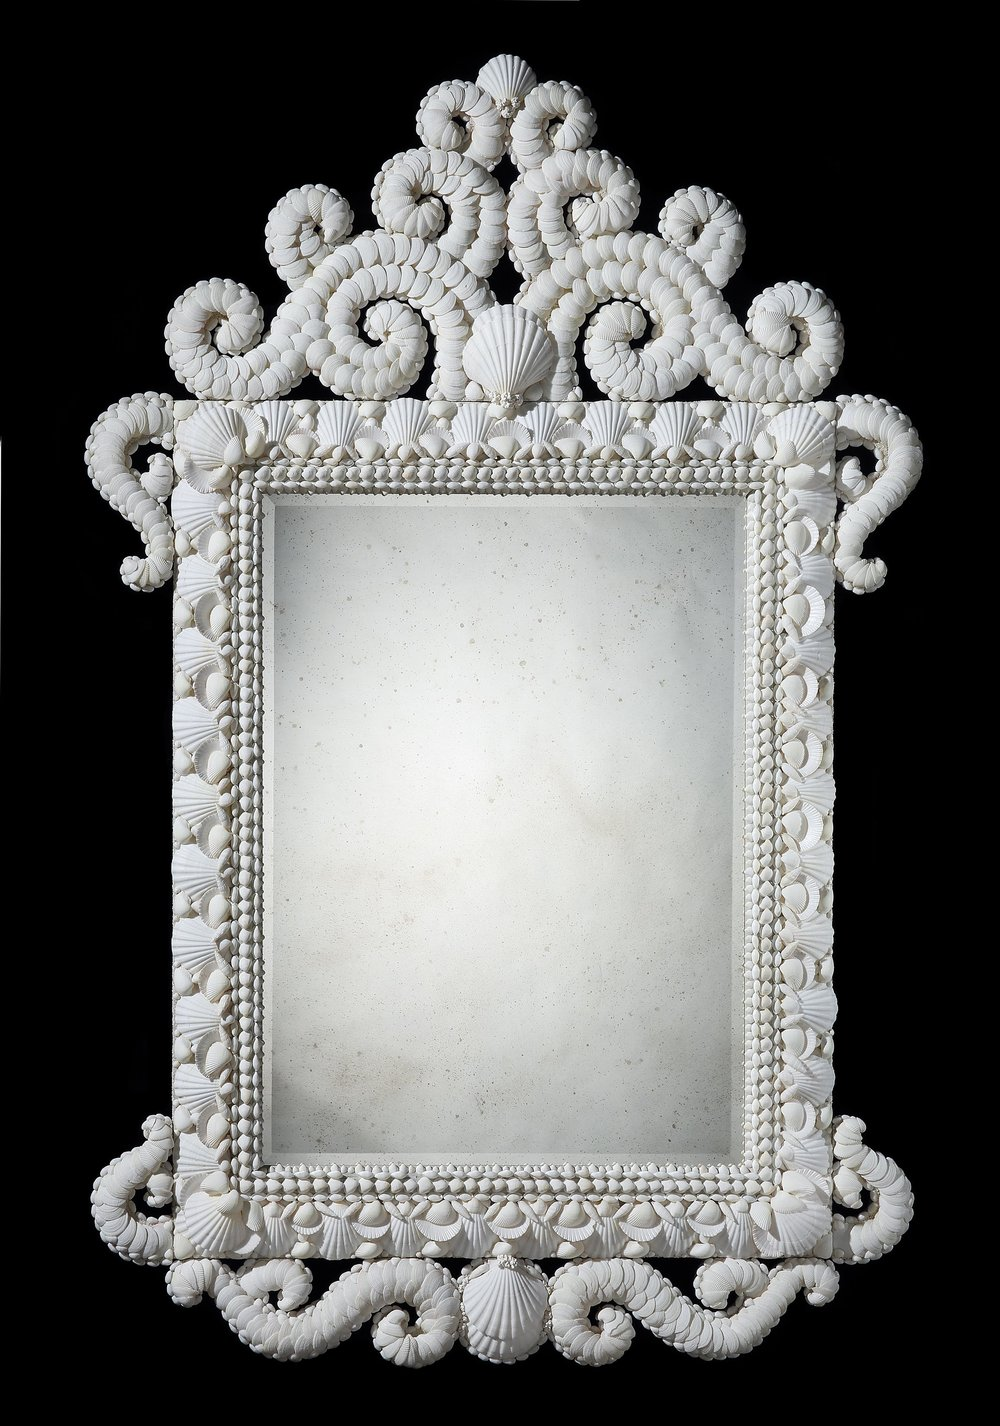 Large White Shell Mirror  A magnificent white shell mirror with ascending scroll pediment, matching sides and apron. A vast selection of carefully chosen white shells have been used to embellish this ornate looking glass.Mirror plate hand distressed and with bevel edge.  200cm x 130cm